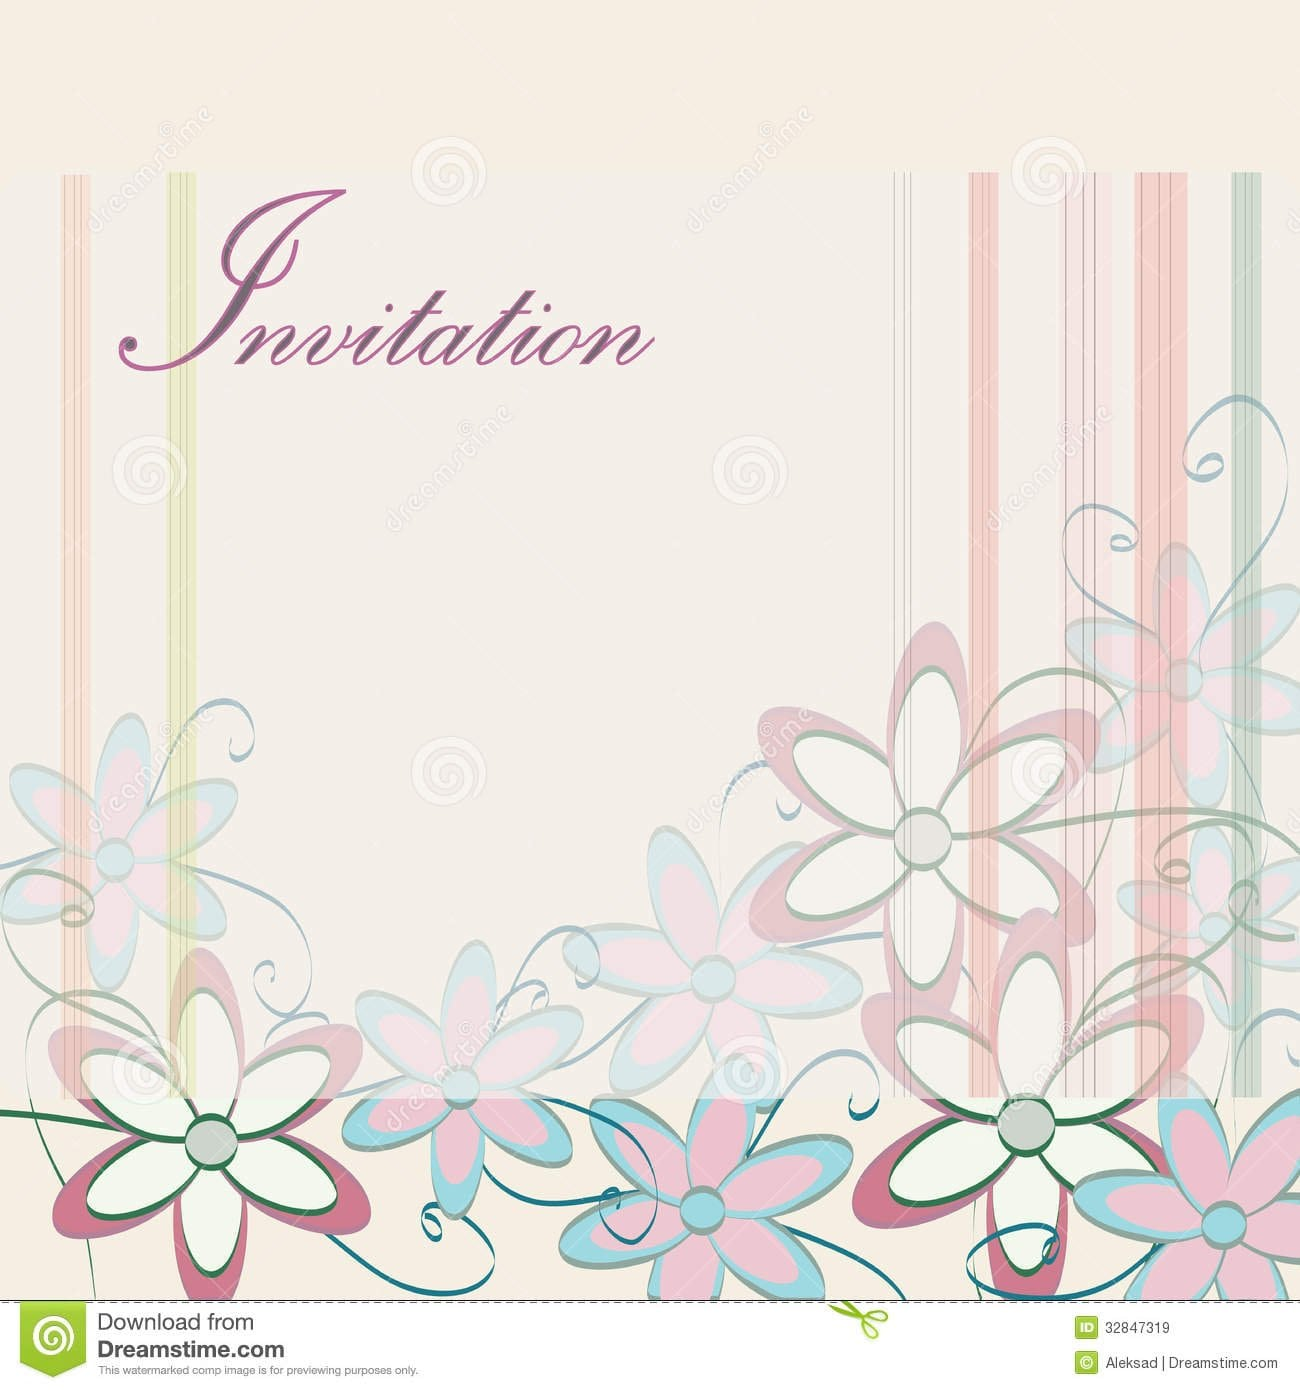 Wedding Invitation Design Templates Free Download - Wedding invitation templates: email wedding invitation templates free download